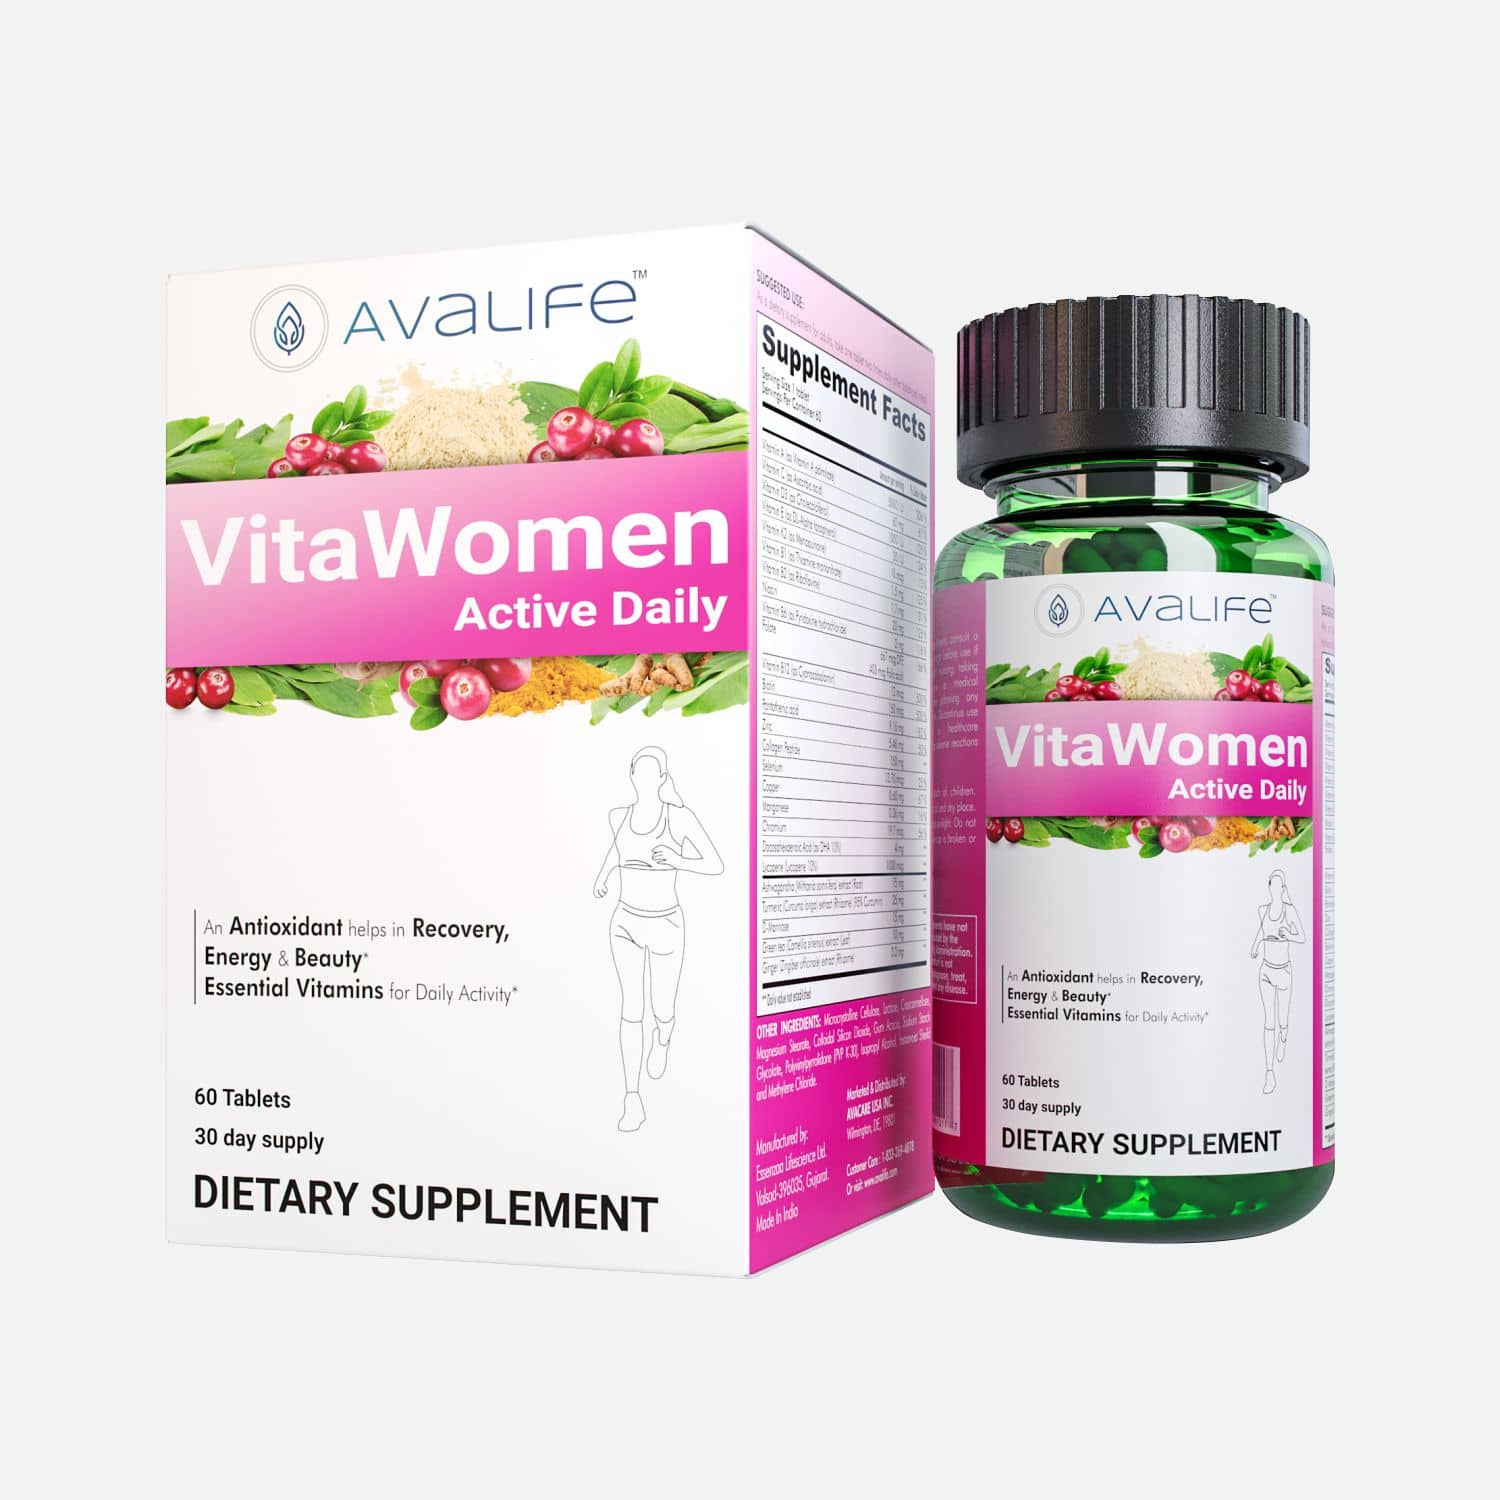 VitaWomen Active Daily